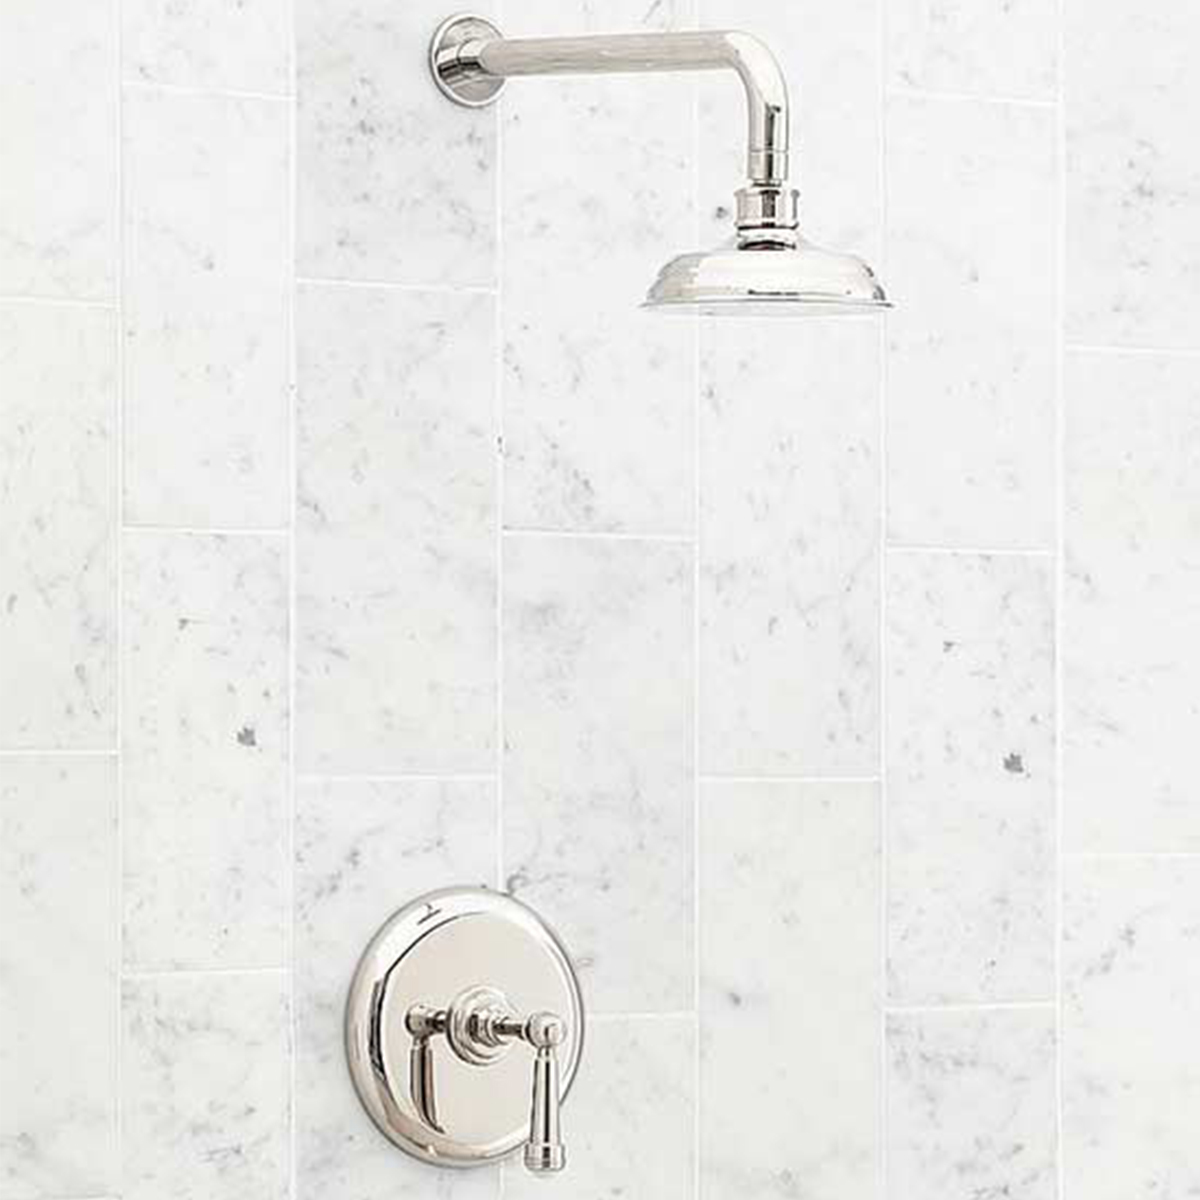 Pottery Barn brass shower faucet photo